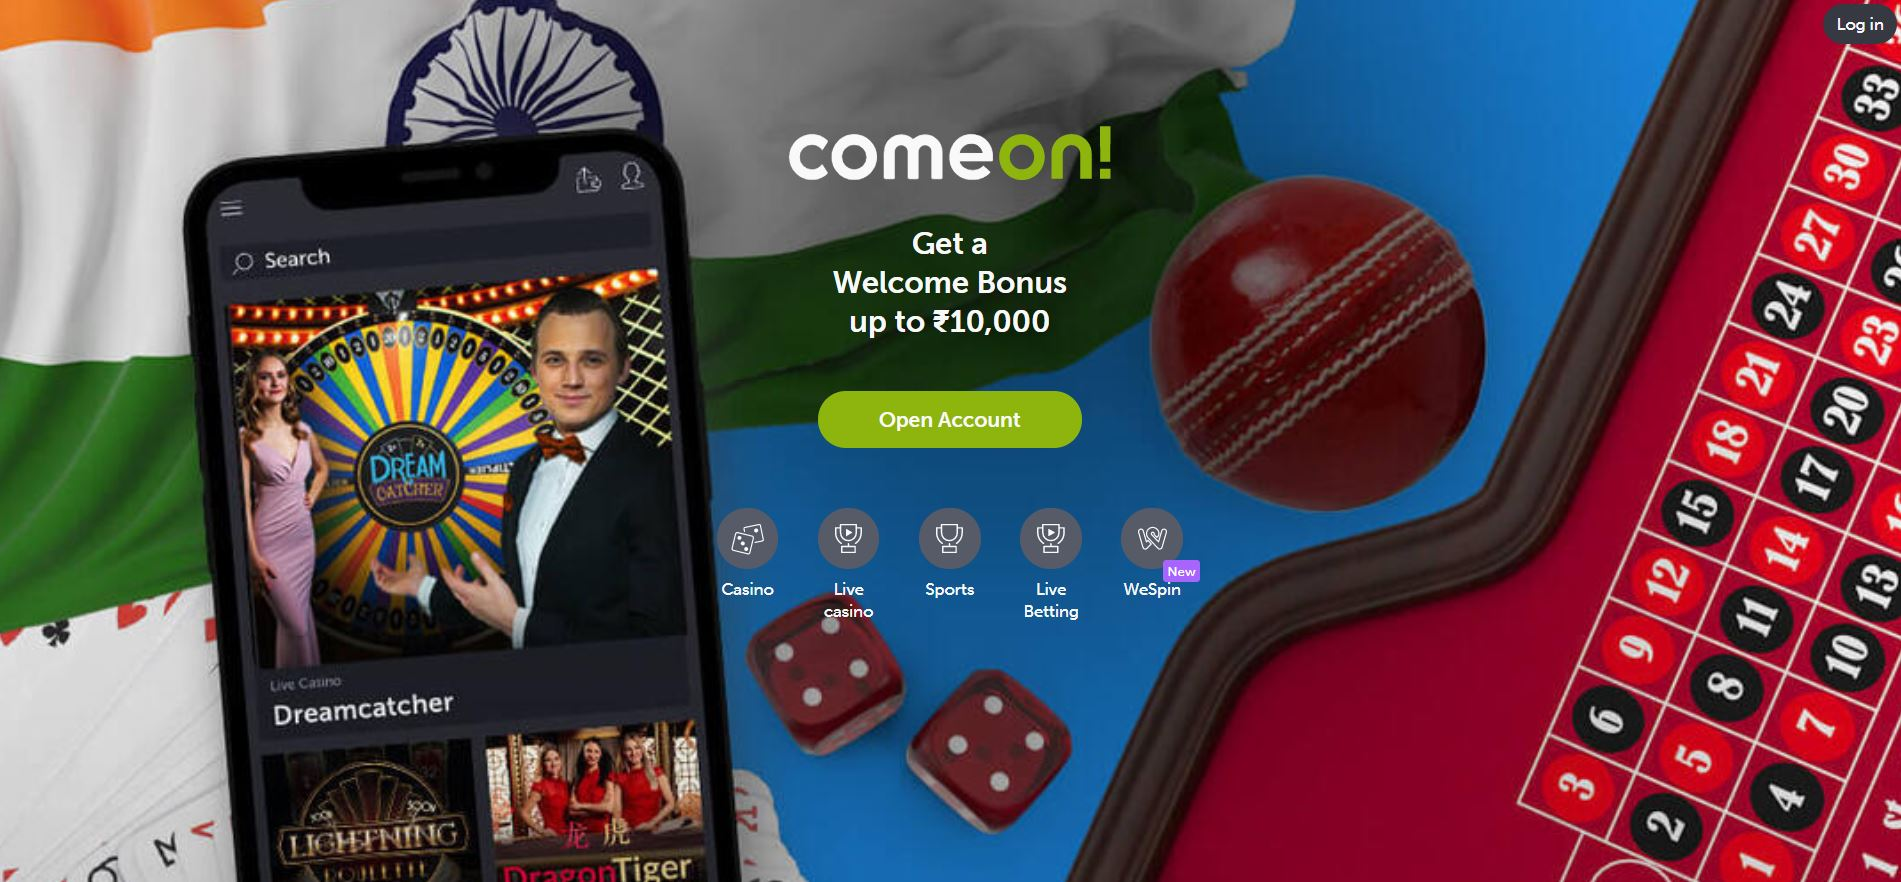 comeon-online-casino-live-betting-site